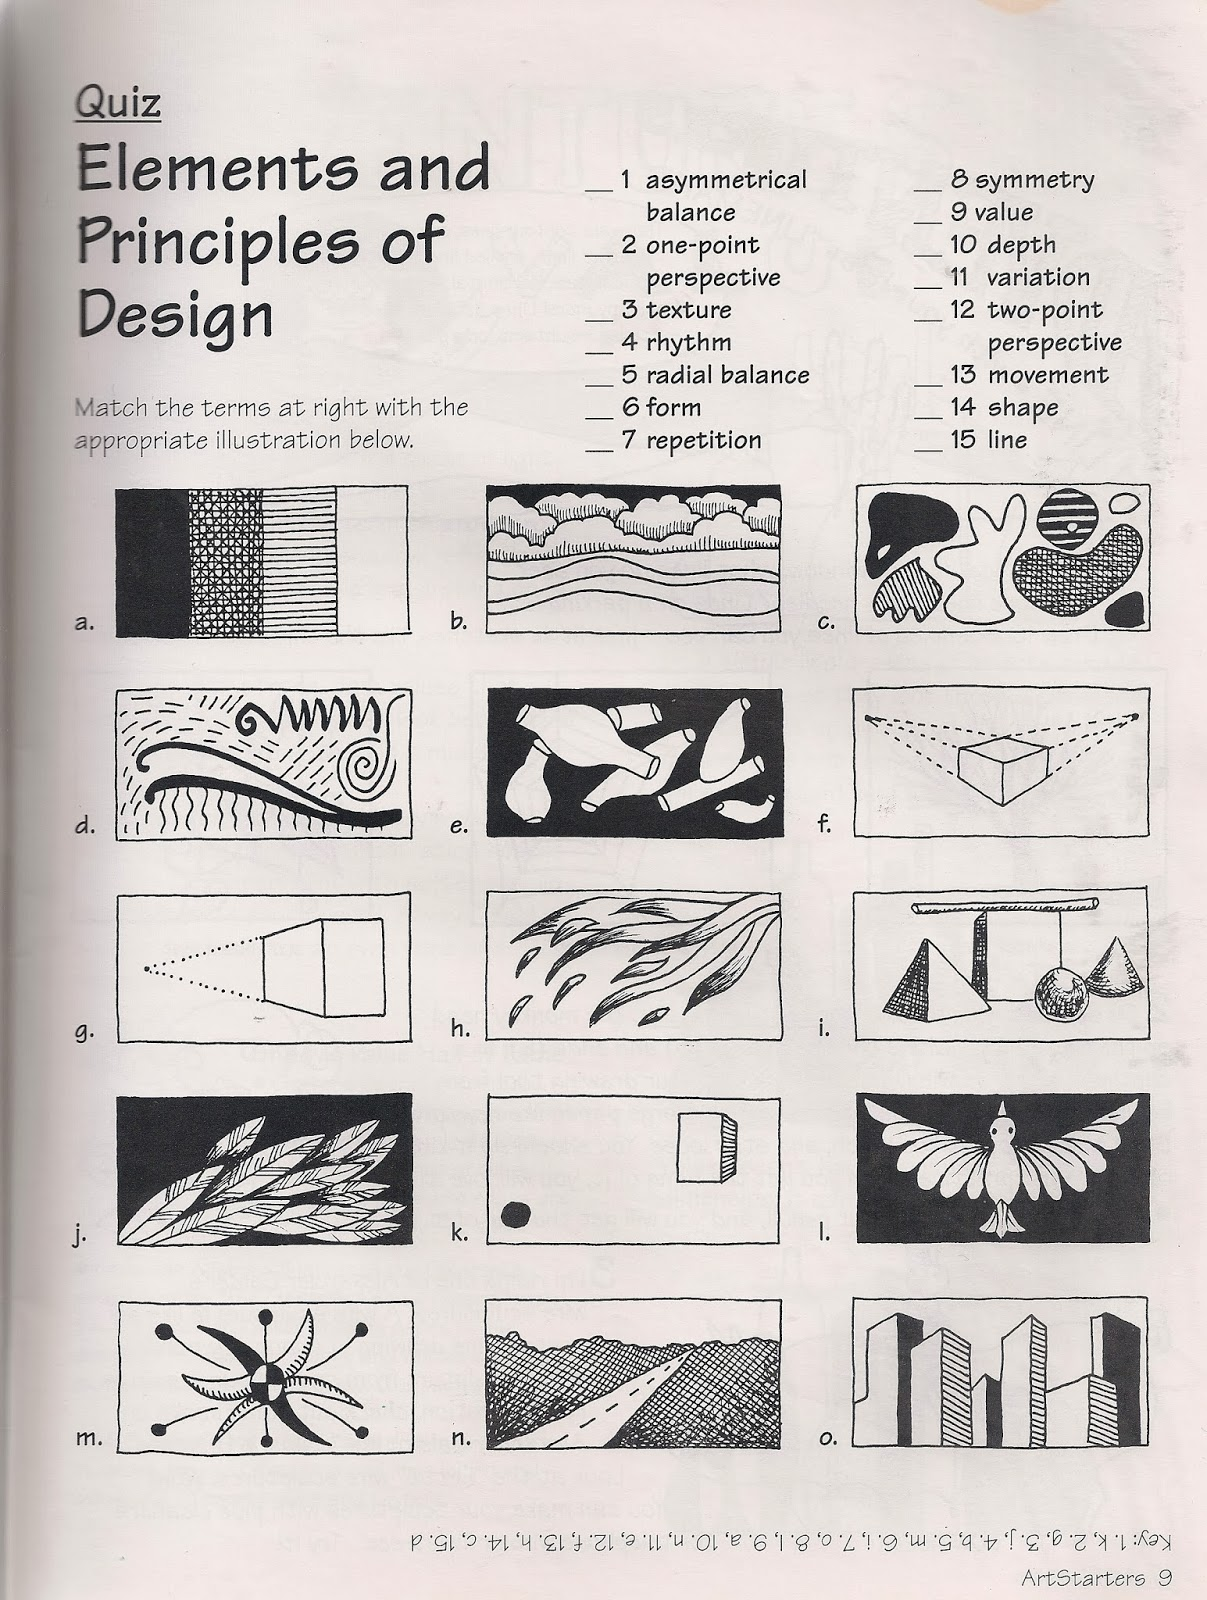 Elements And Principles Of Design Space : No corner suns the elements and principles of art free